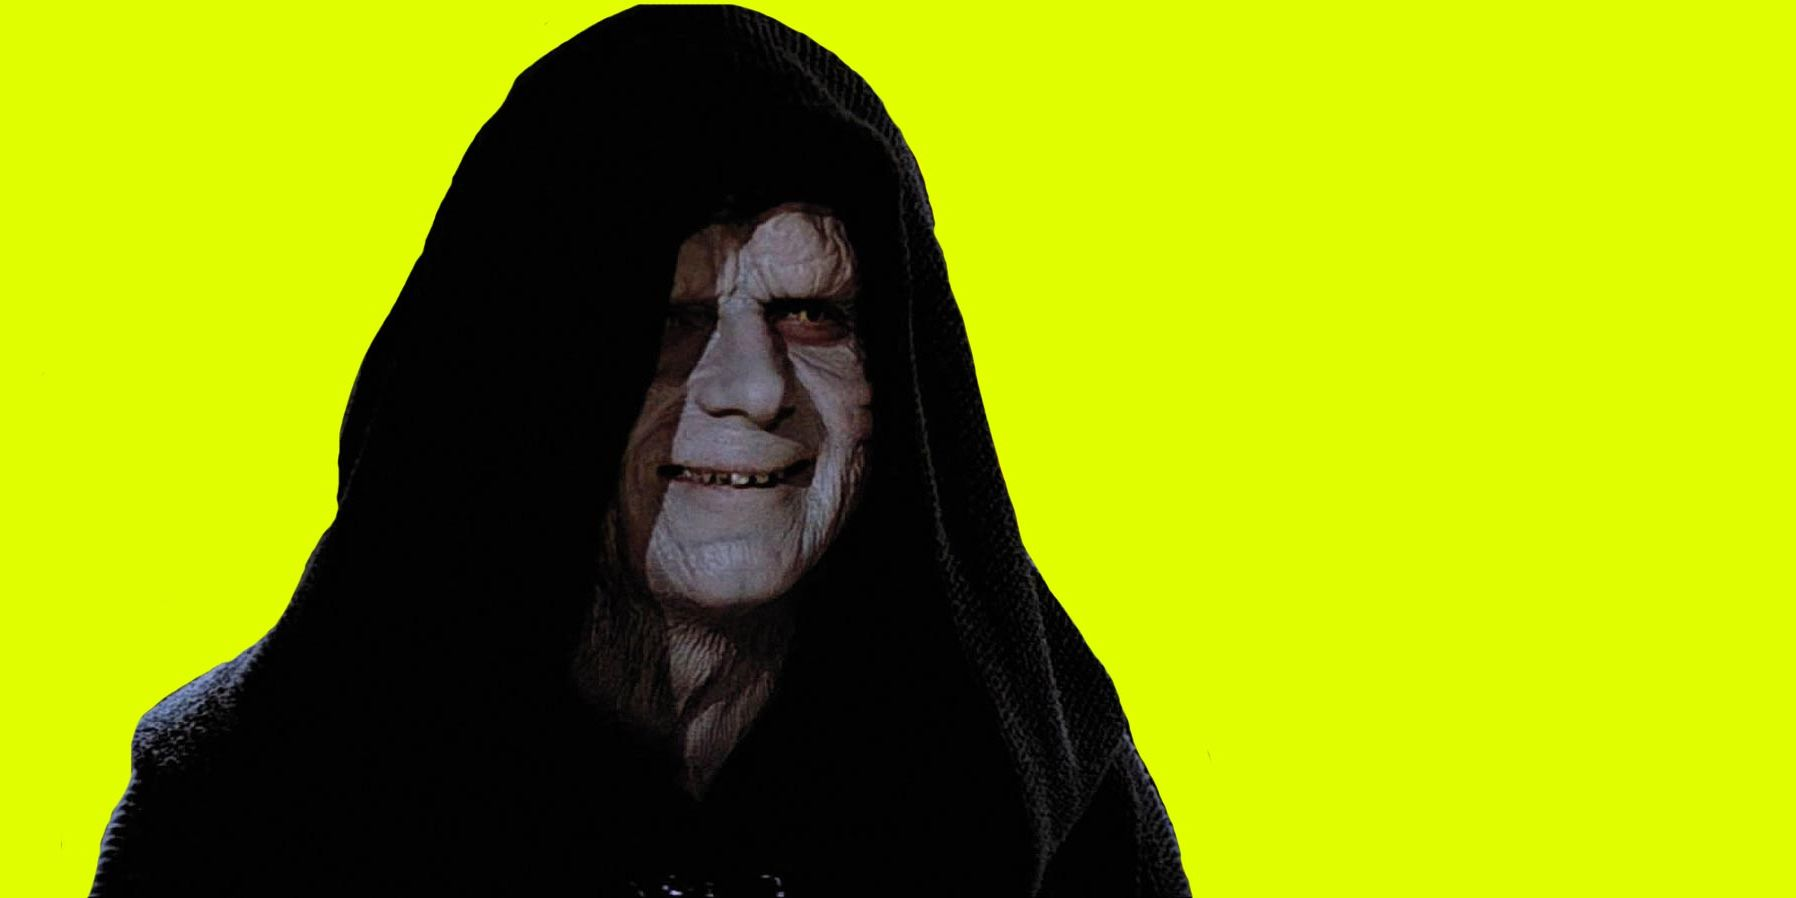 emperador palpatine rise of skywalker